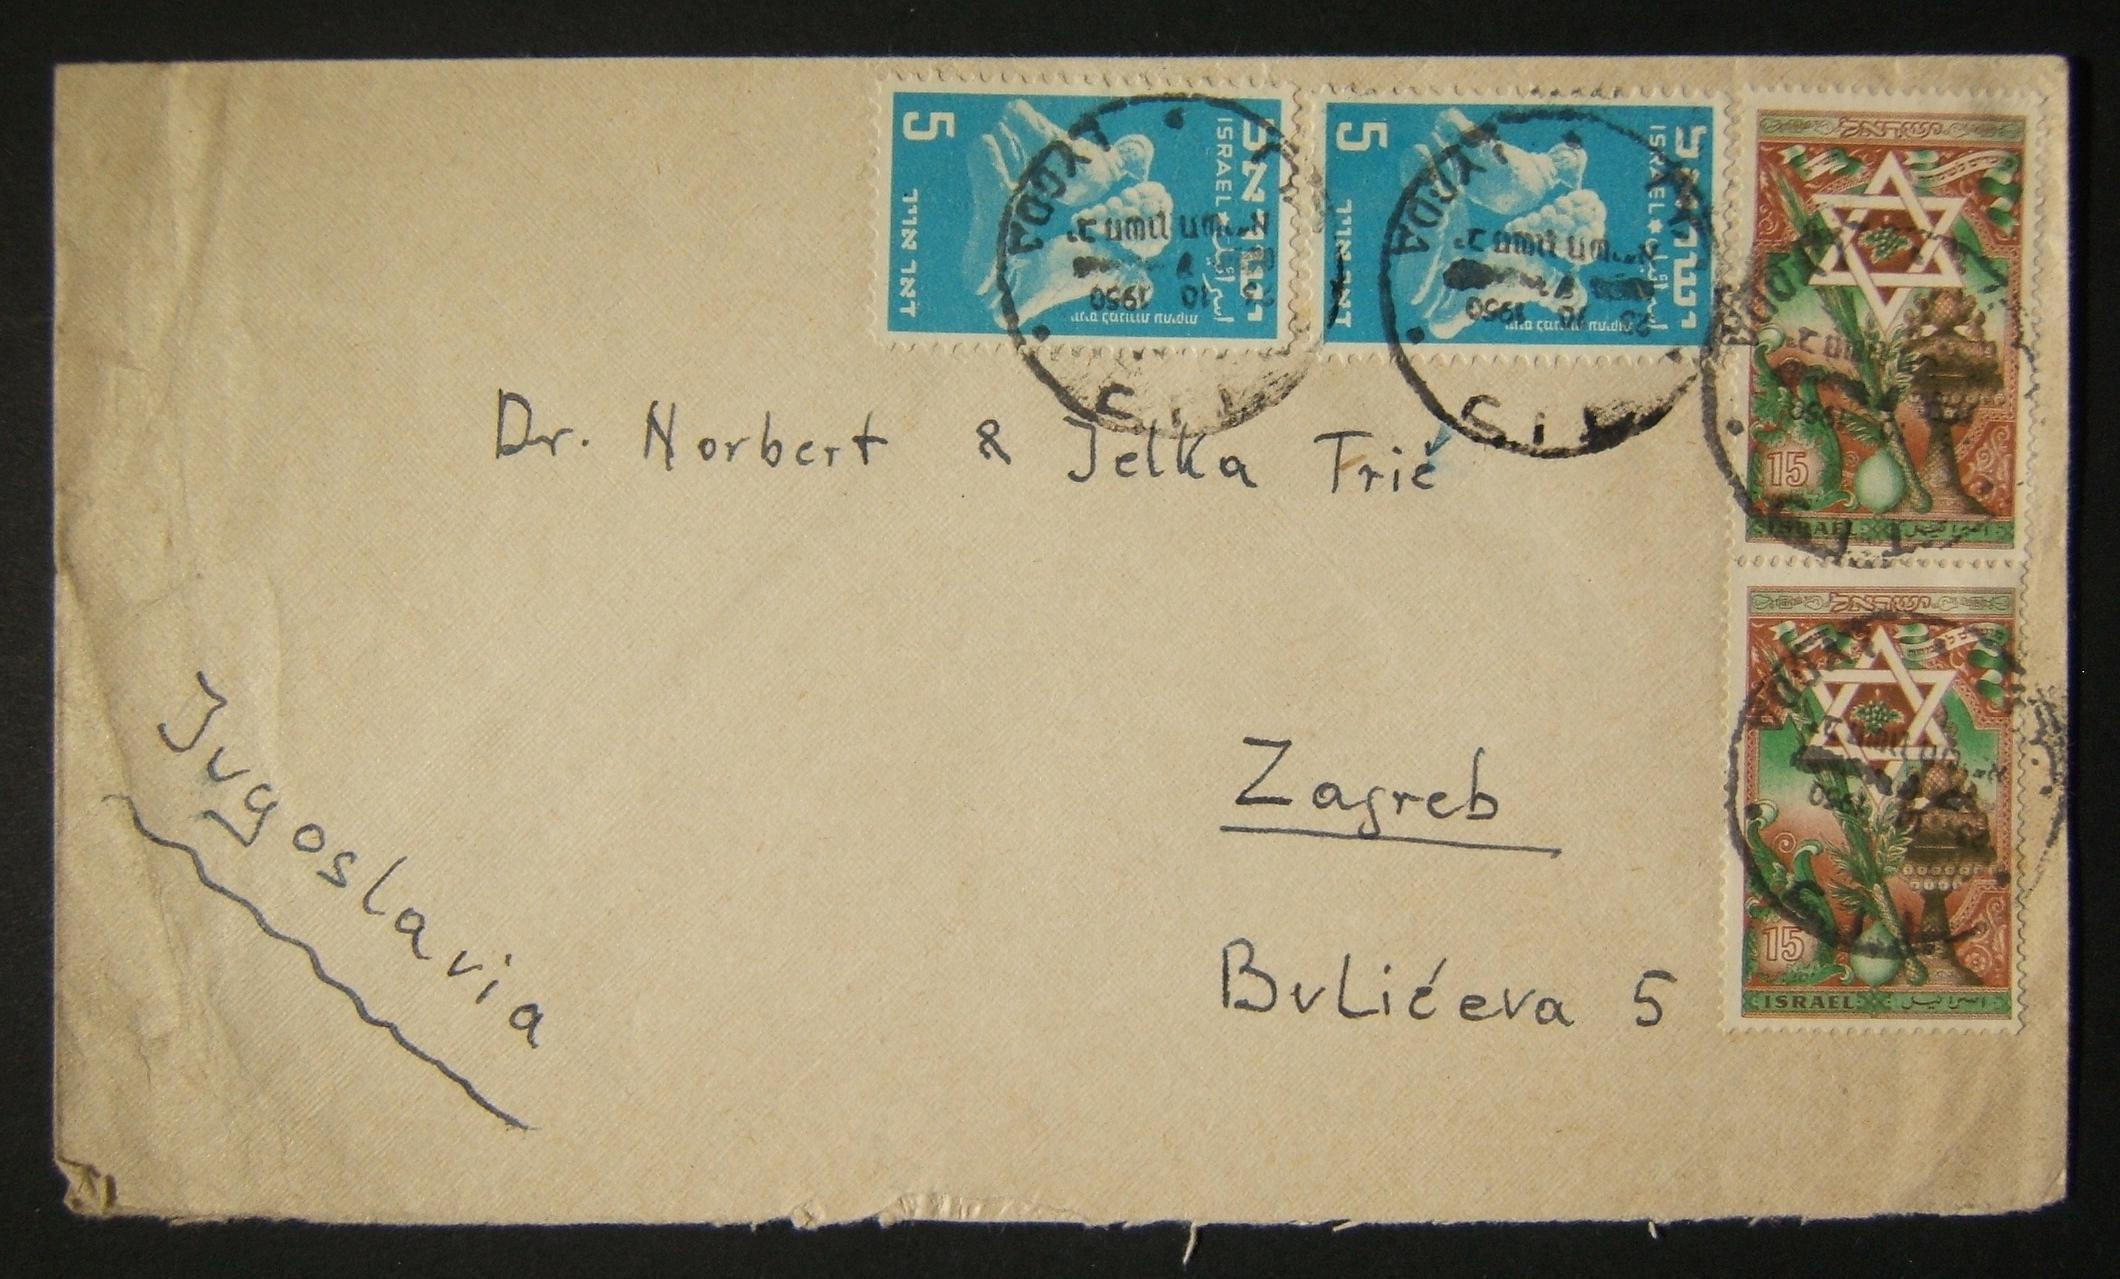 1950 1st airmail / PO's, rates & routes: 23-10-1950 airmail cover ex LYDDA (return addressed Ben Shemen) to ZAGREB franked 40pr at the FA-2a period rate to Europe using 2x 5pr (Ba3